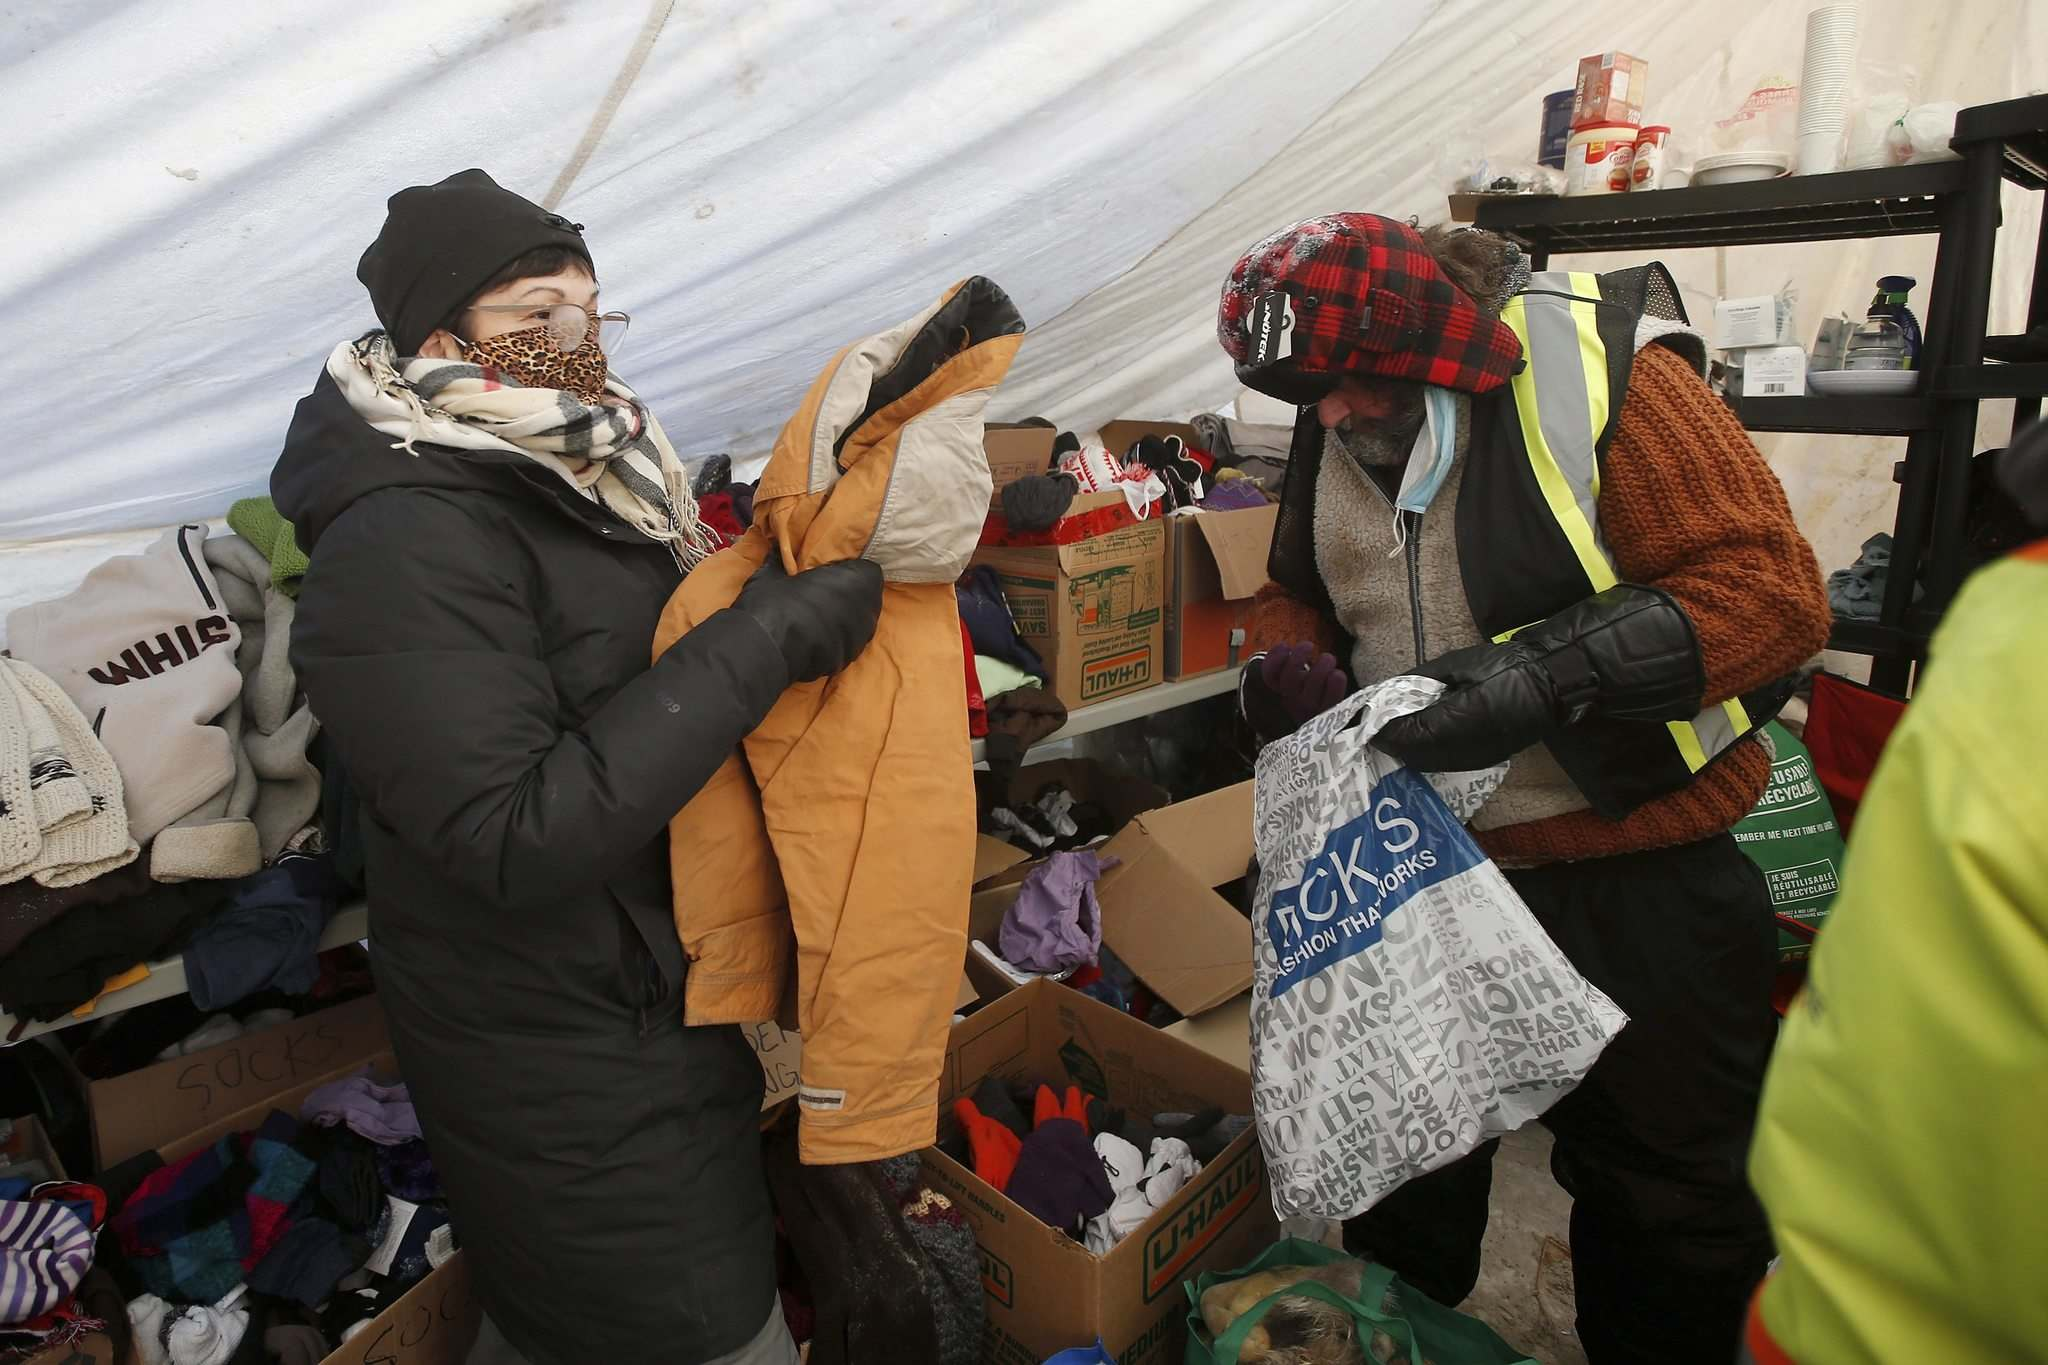 Volunteers Eva Wilson-Fontaine, left, and Tony DeRose sort donations at the clothing drop-off.